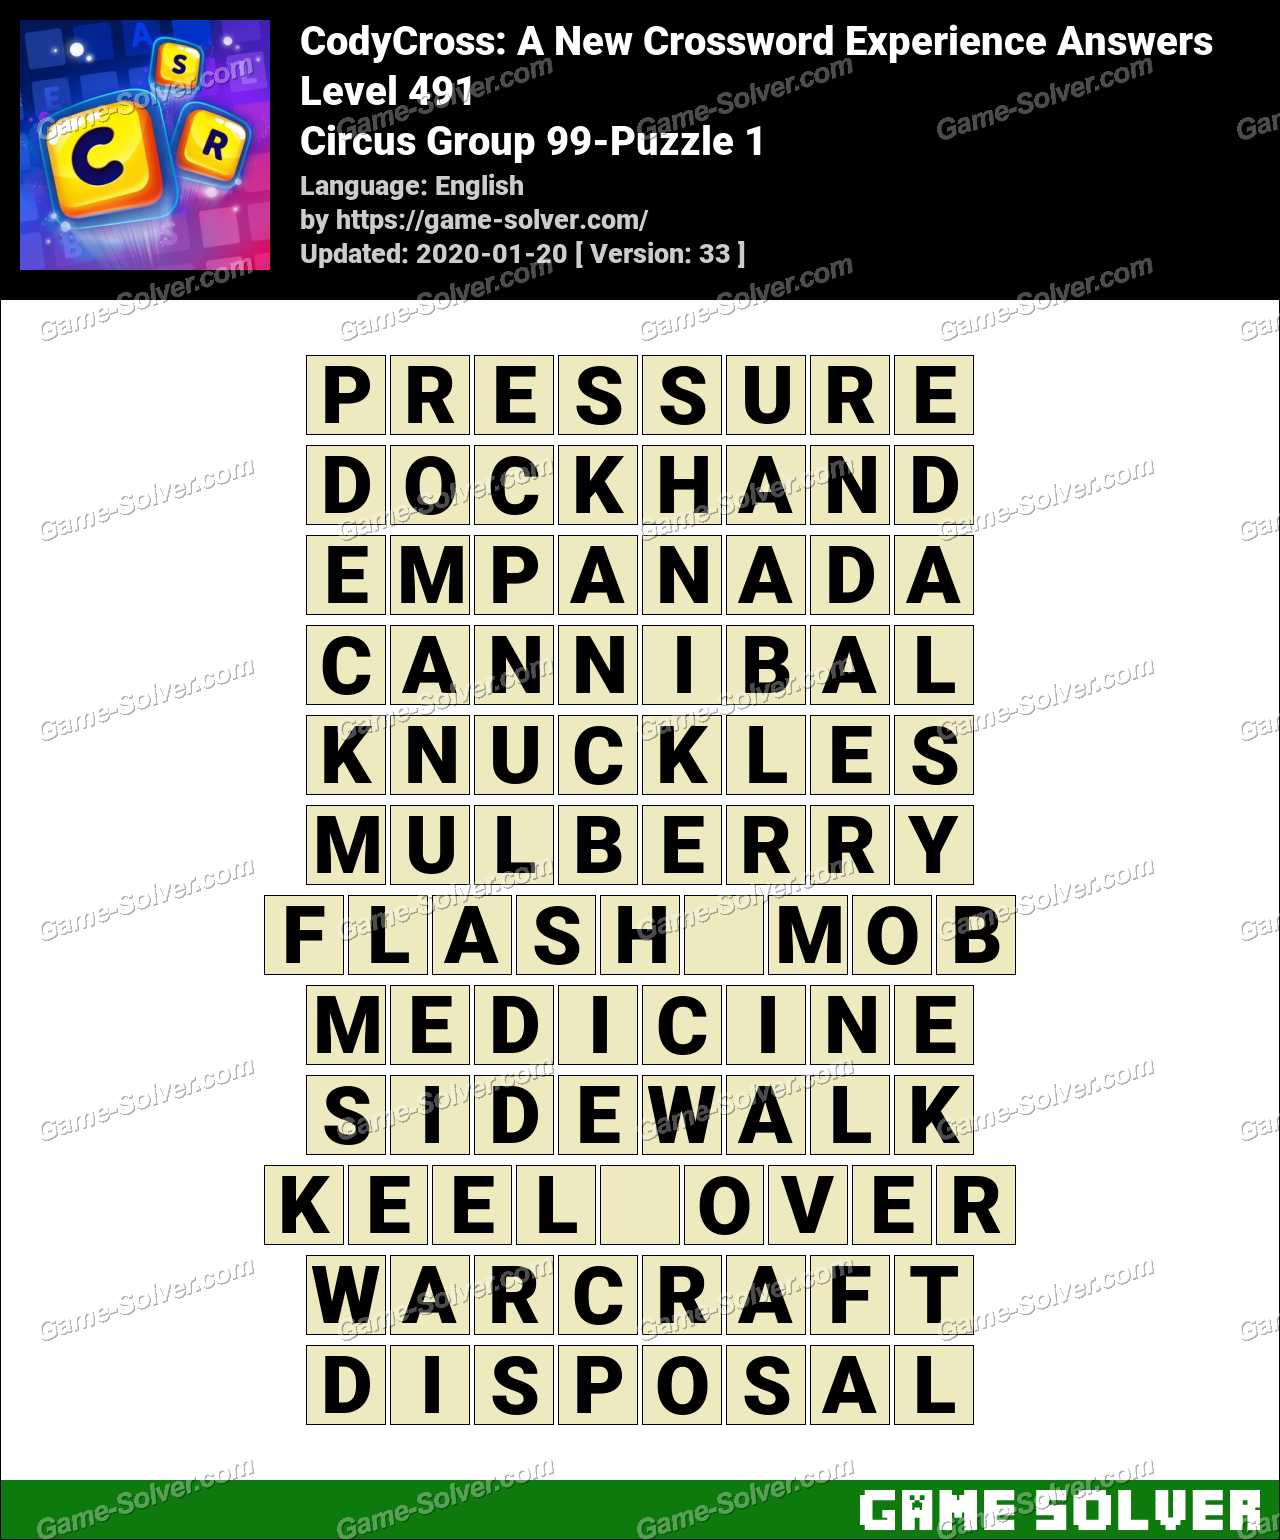 CodyCross Circus Group 99-Puzzle 1 Answers